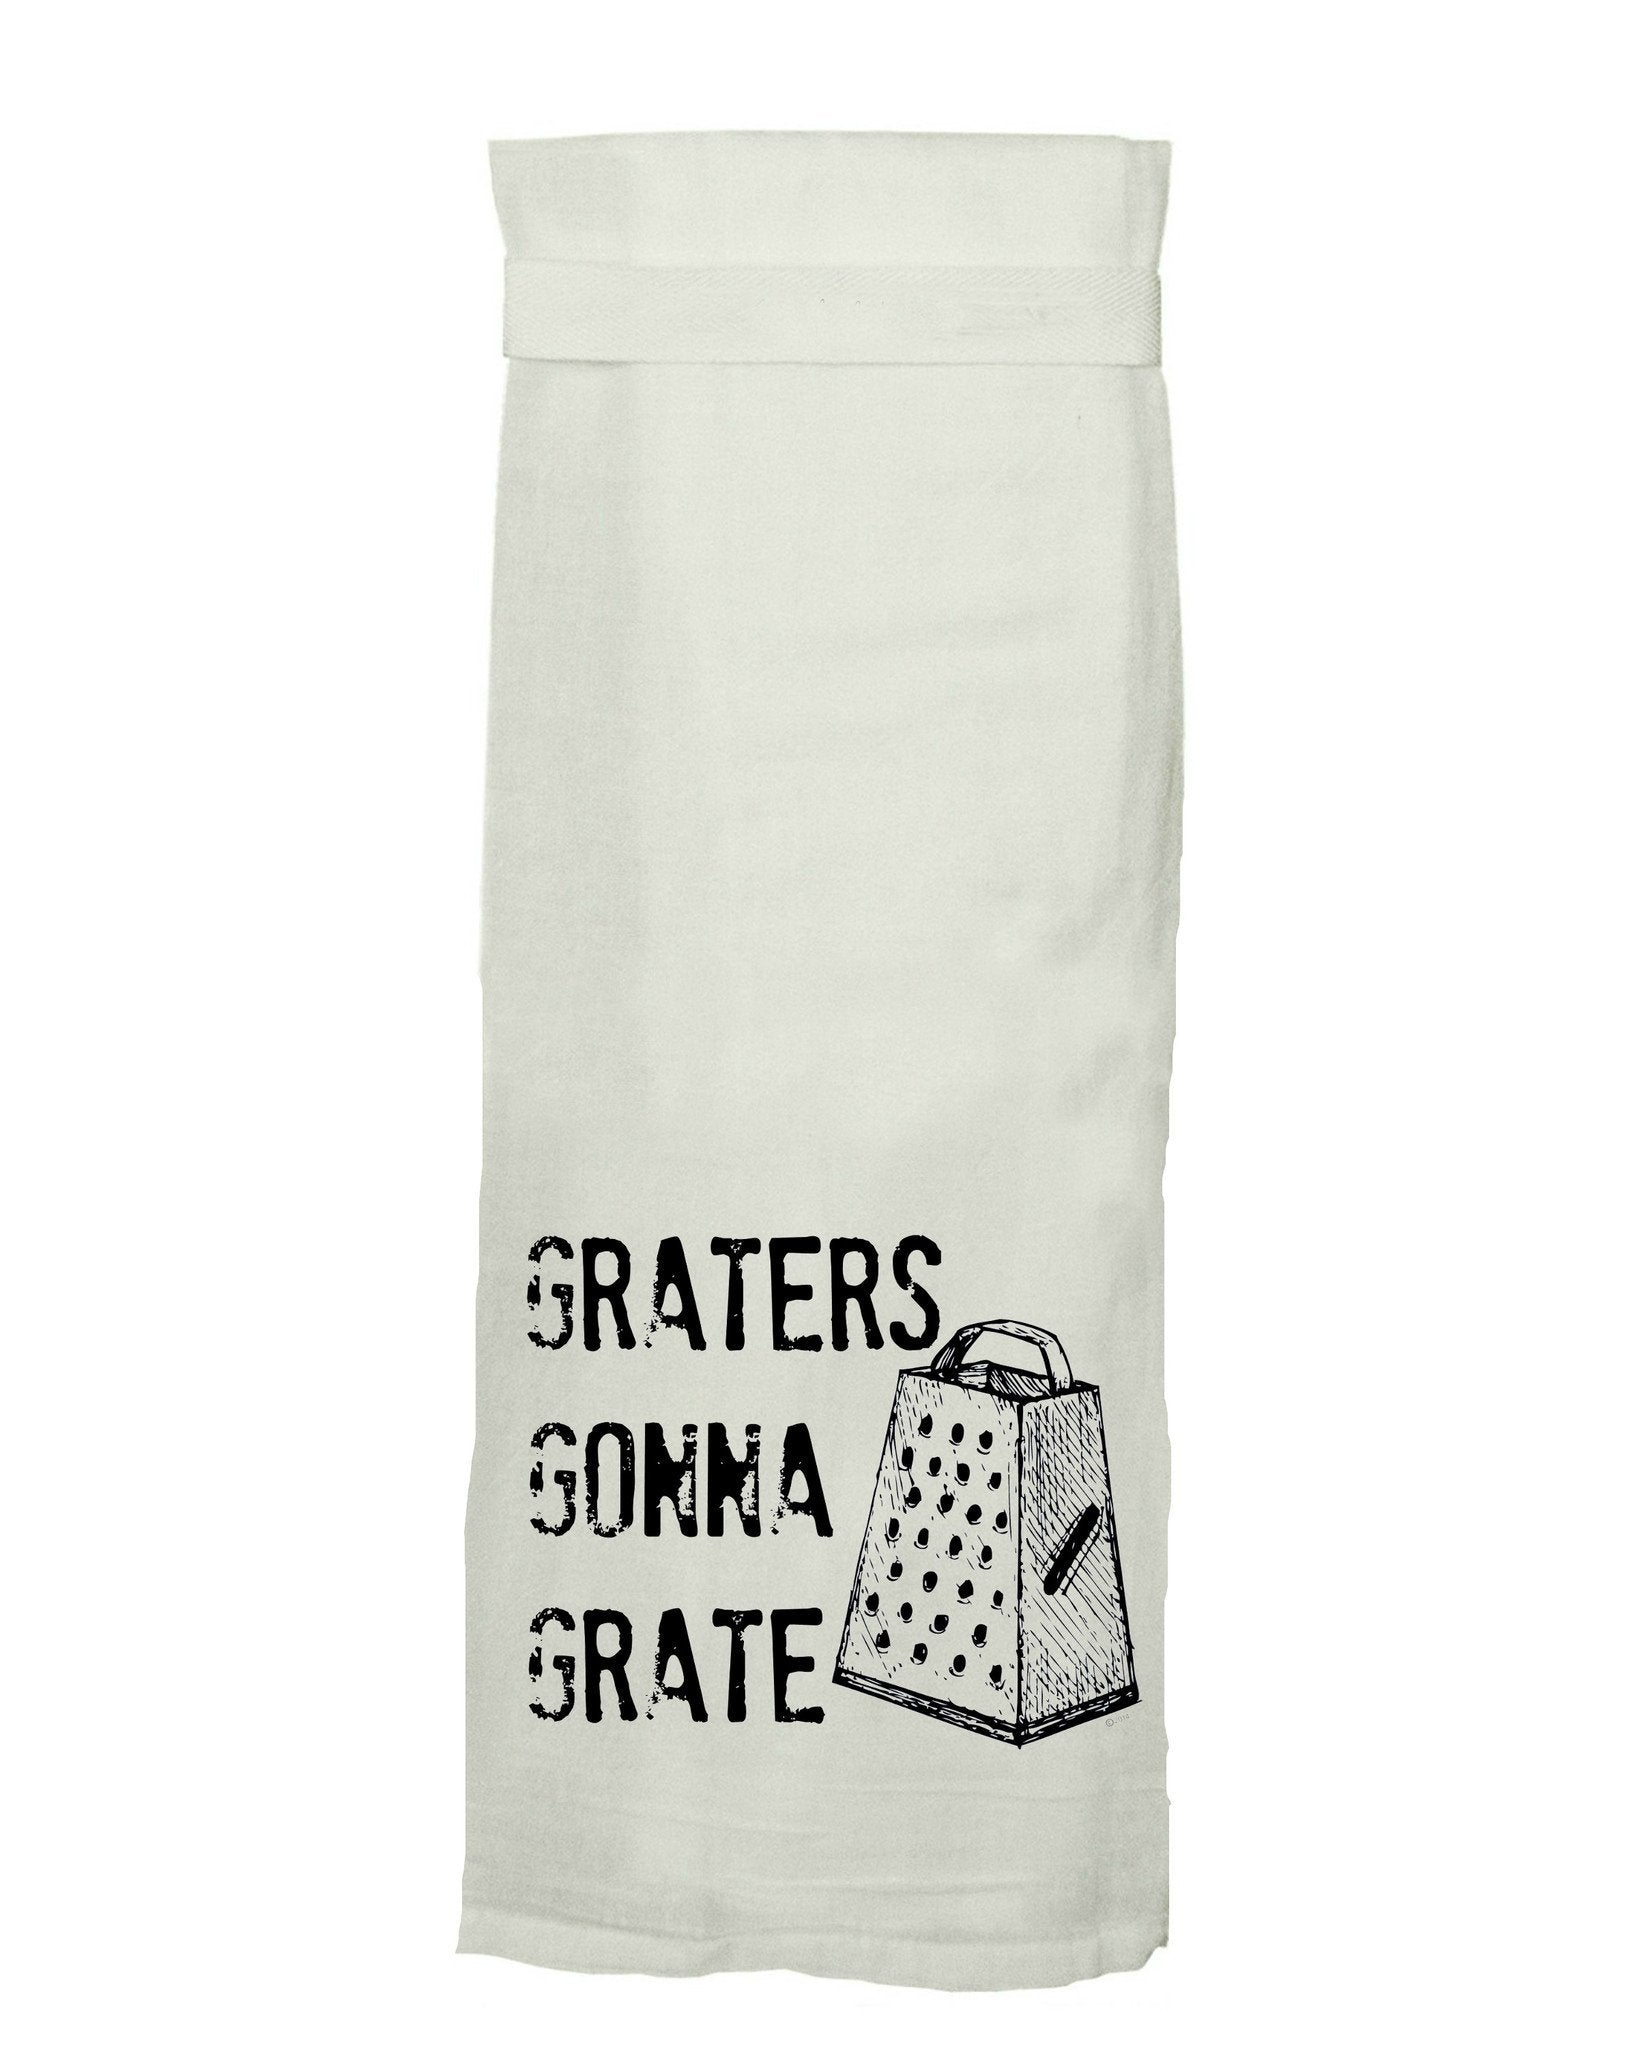 Buy Graters Gonna Grate Flour Sack Tea Towel from Walking Pants Curiosities, the Most un-General Gift Store in Downtown Memphis, Tennessee!